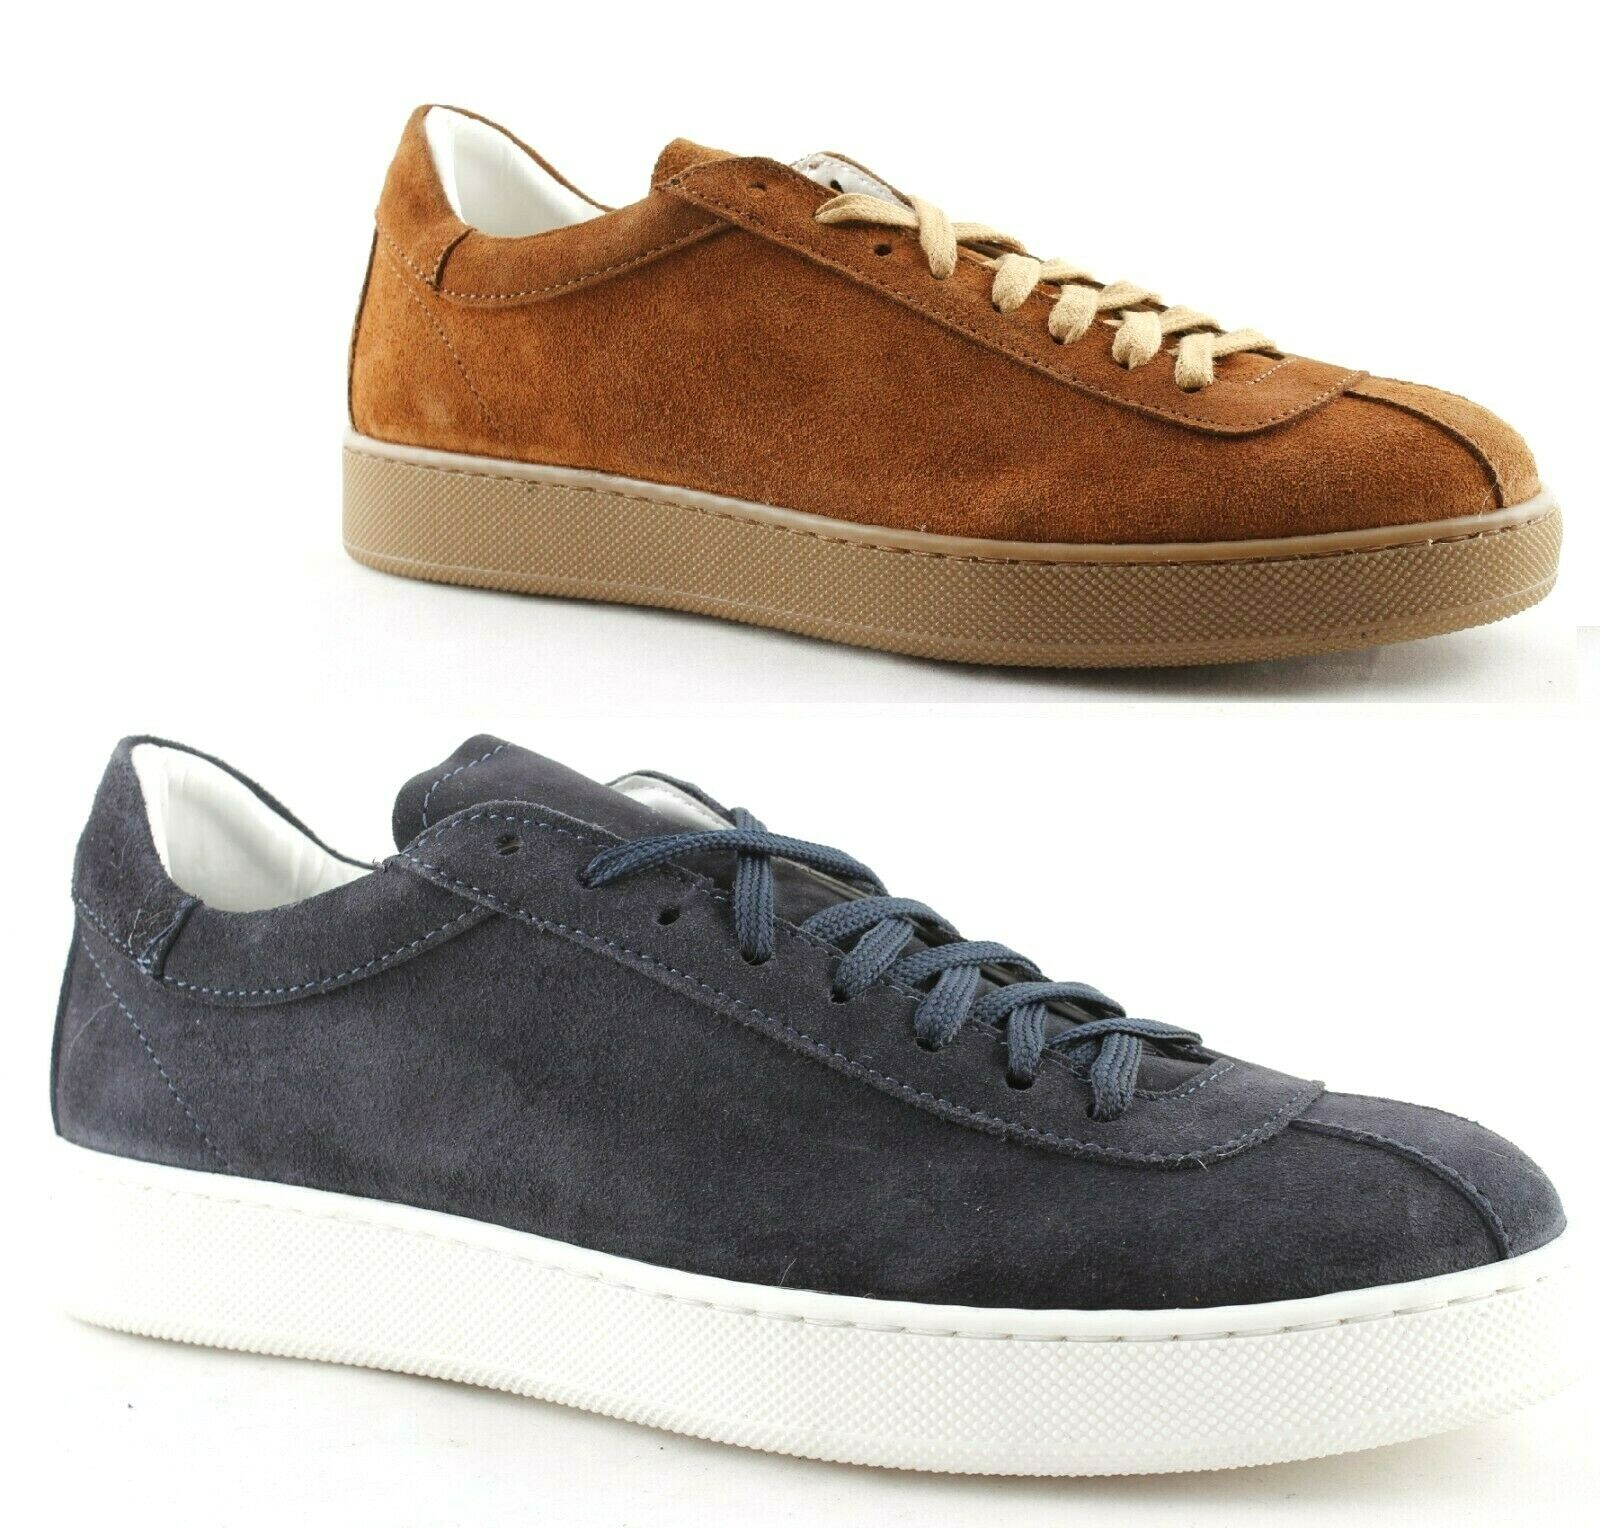 Sneakers shoes Man Low Suede bluee White Brown Leather Made in